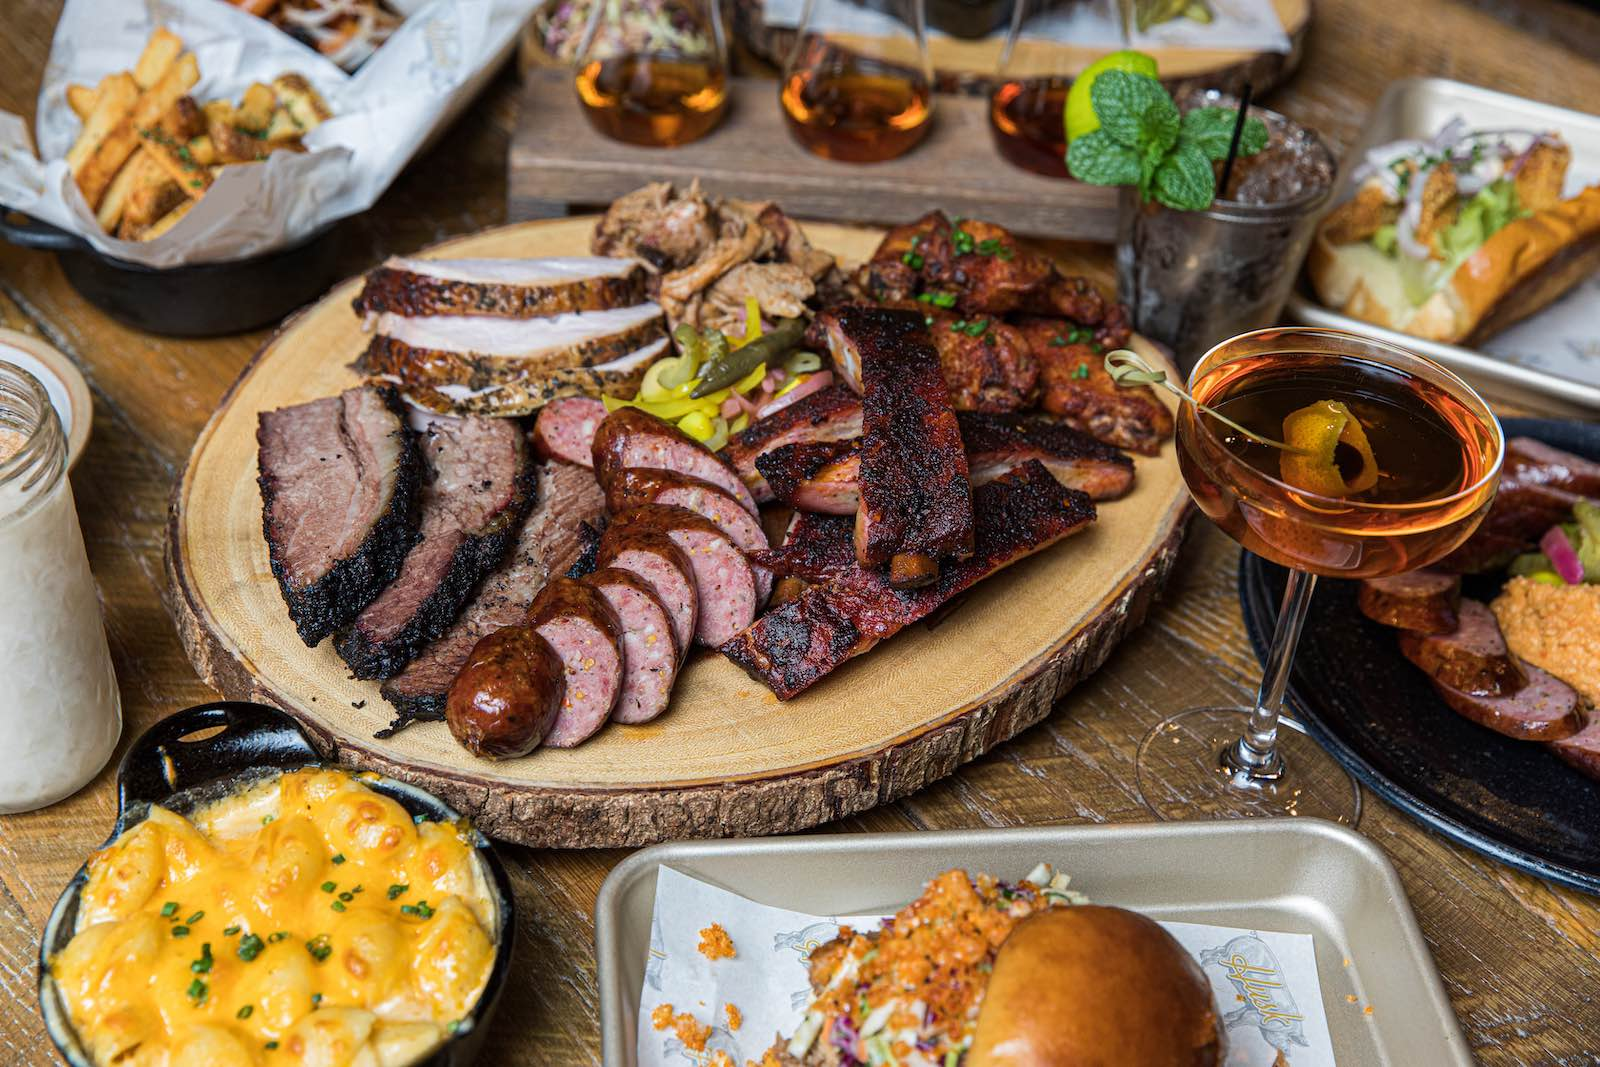 In December Husk Greenville pivoted to smoked meat platters as Husk Barbeque